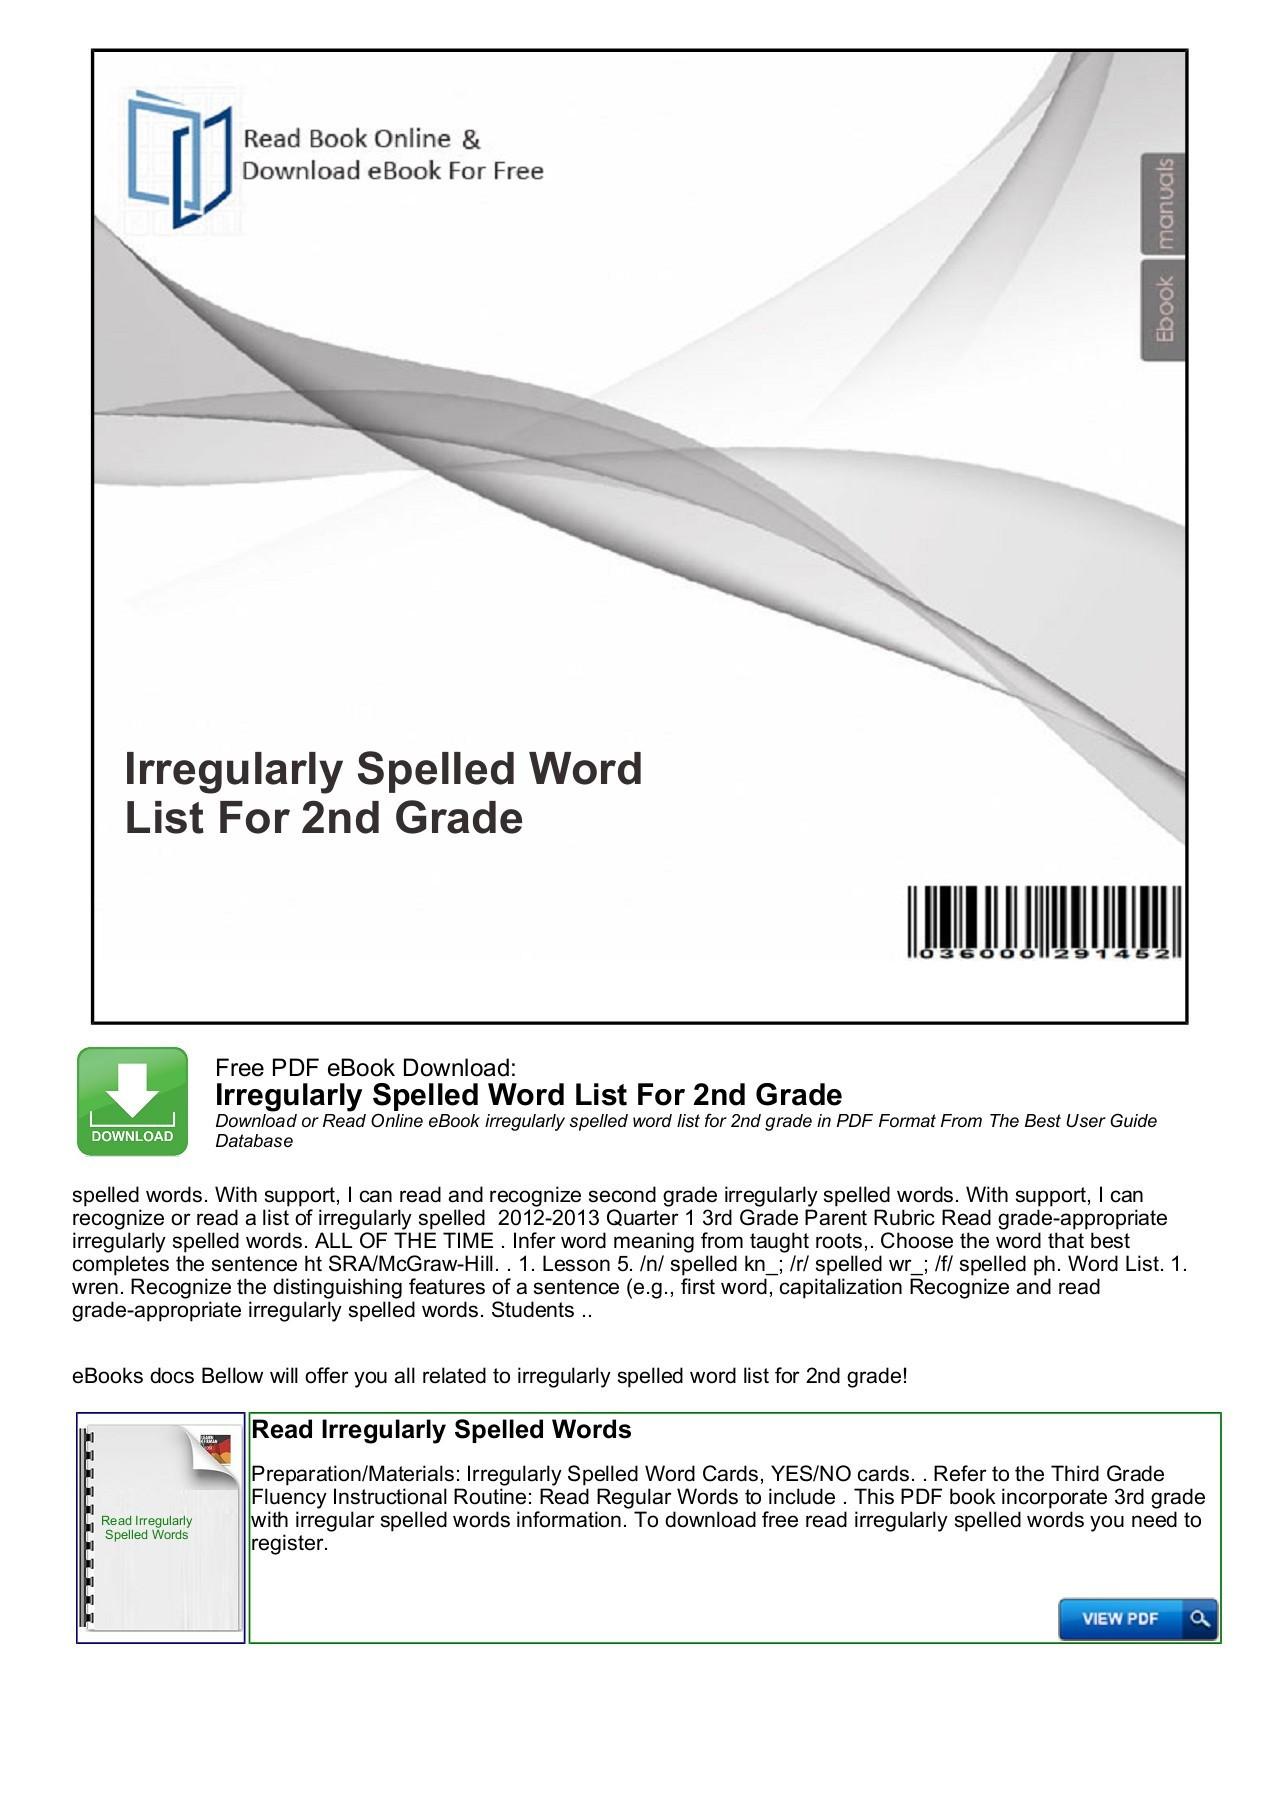 Irregularly Spelled Words 2nd Grade Irregularly Spelled Word List for 2nd Grade Pages 1 7